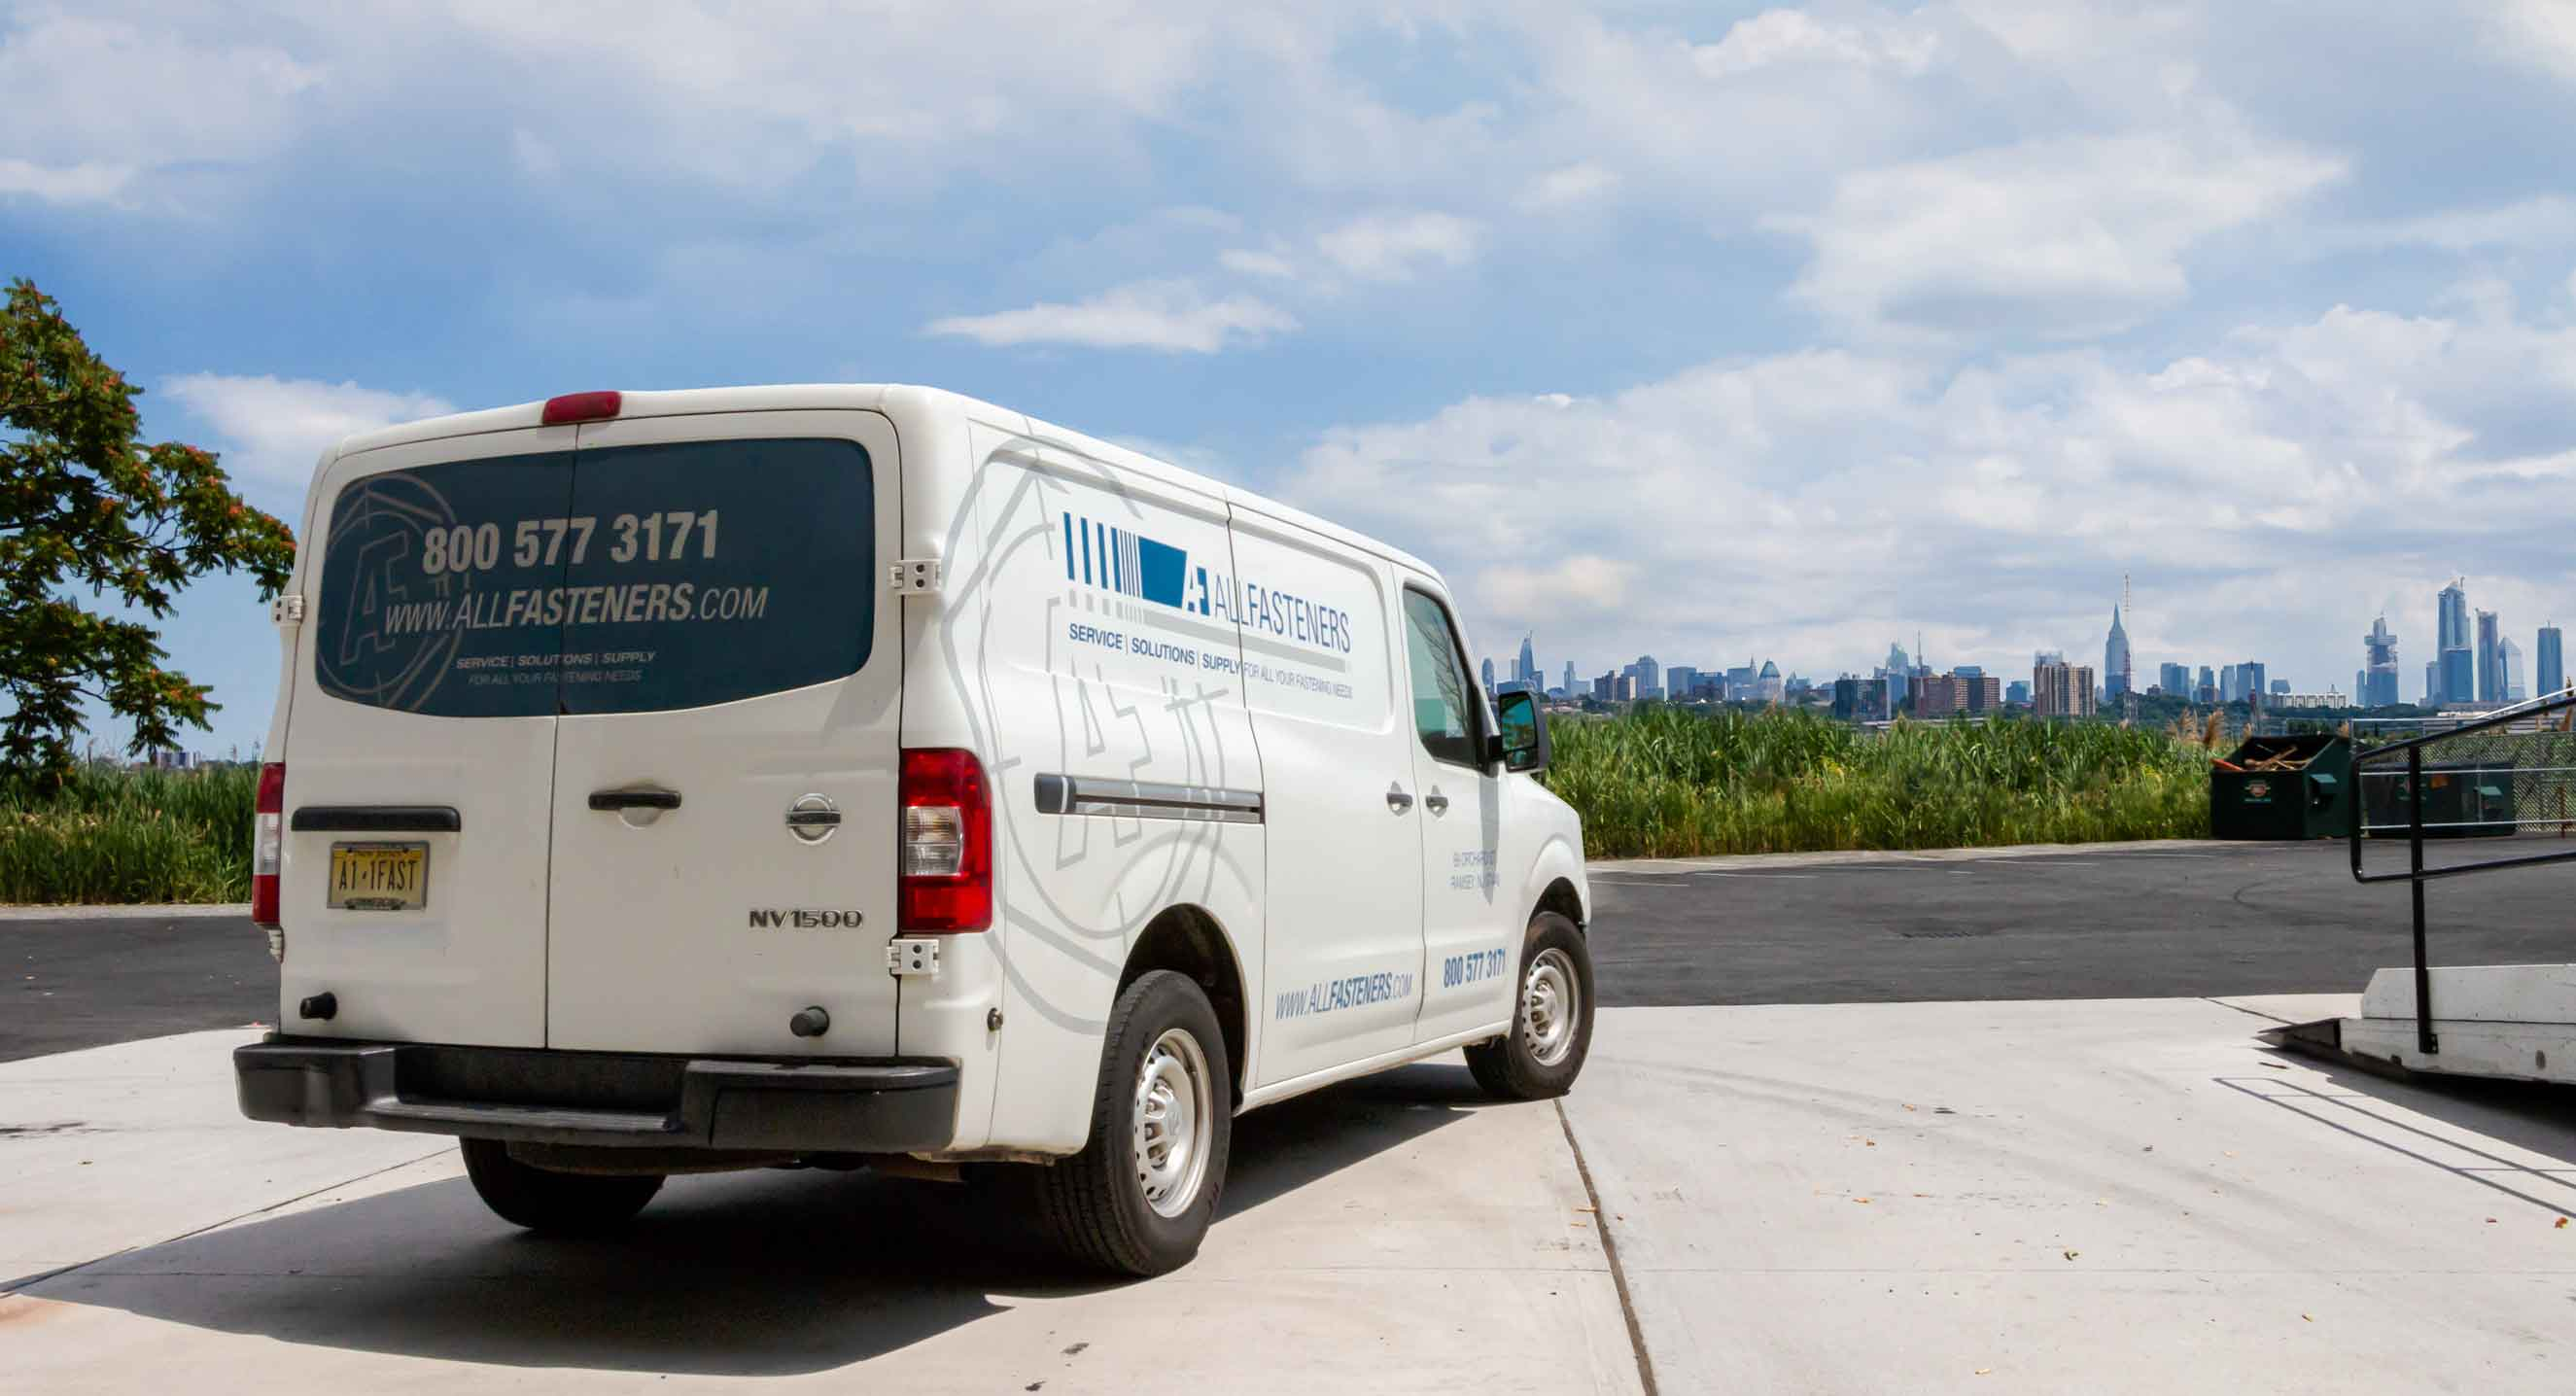 AF delivery van for speedy reliable shipping